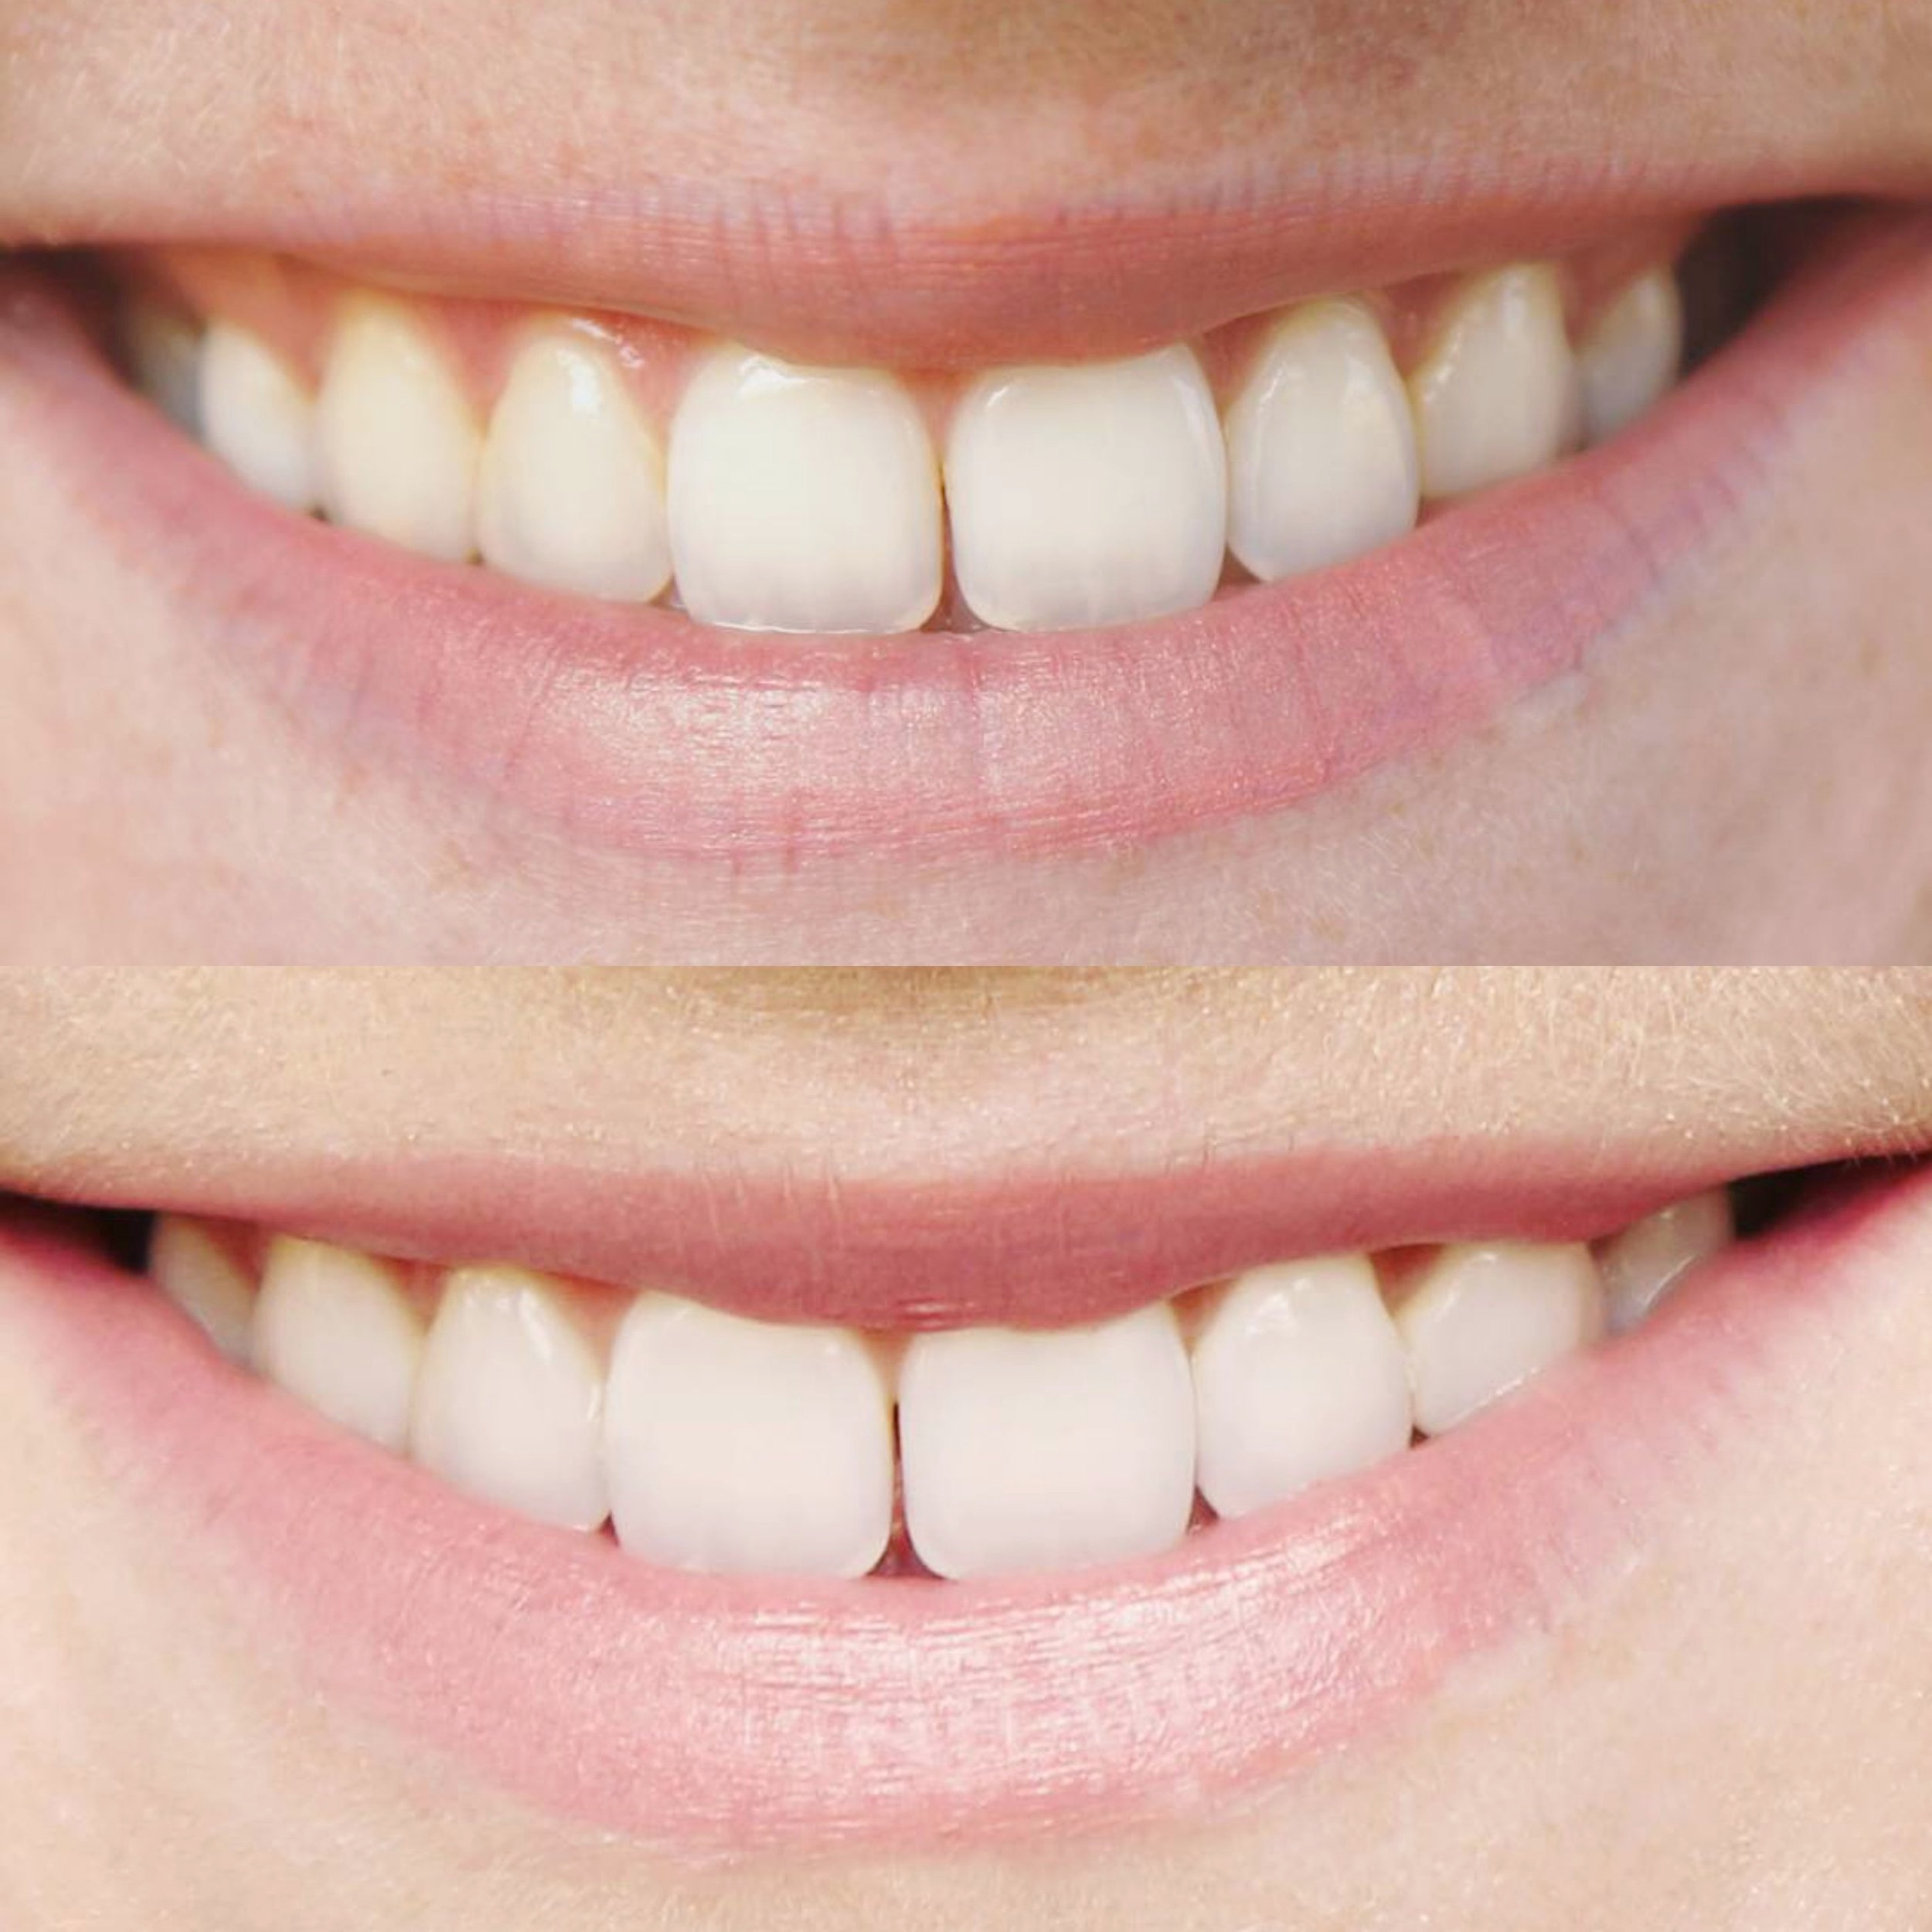 Before and After Smile Brilliant Teeth Whitening